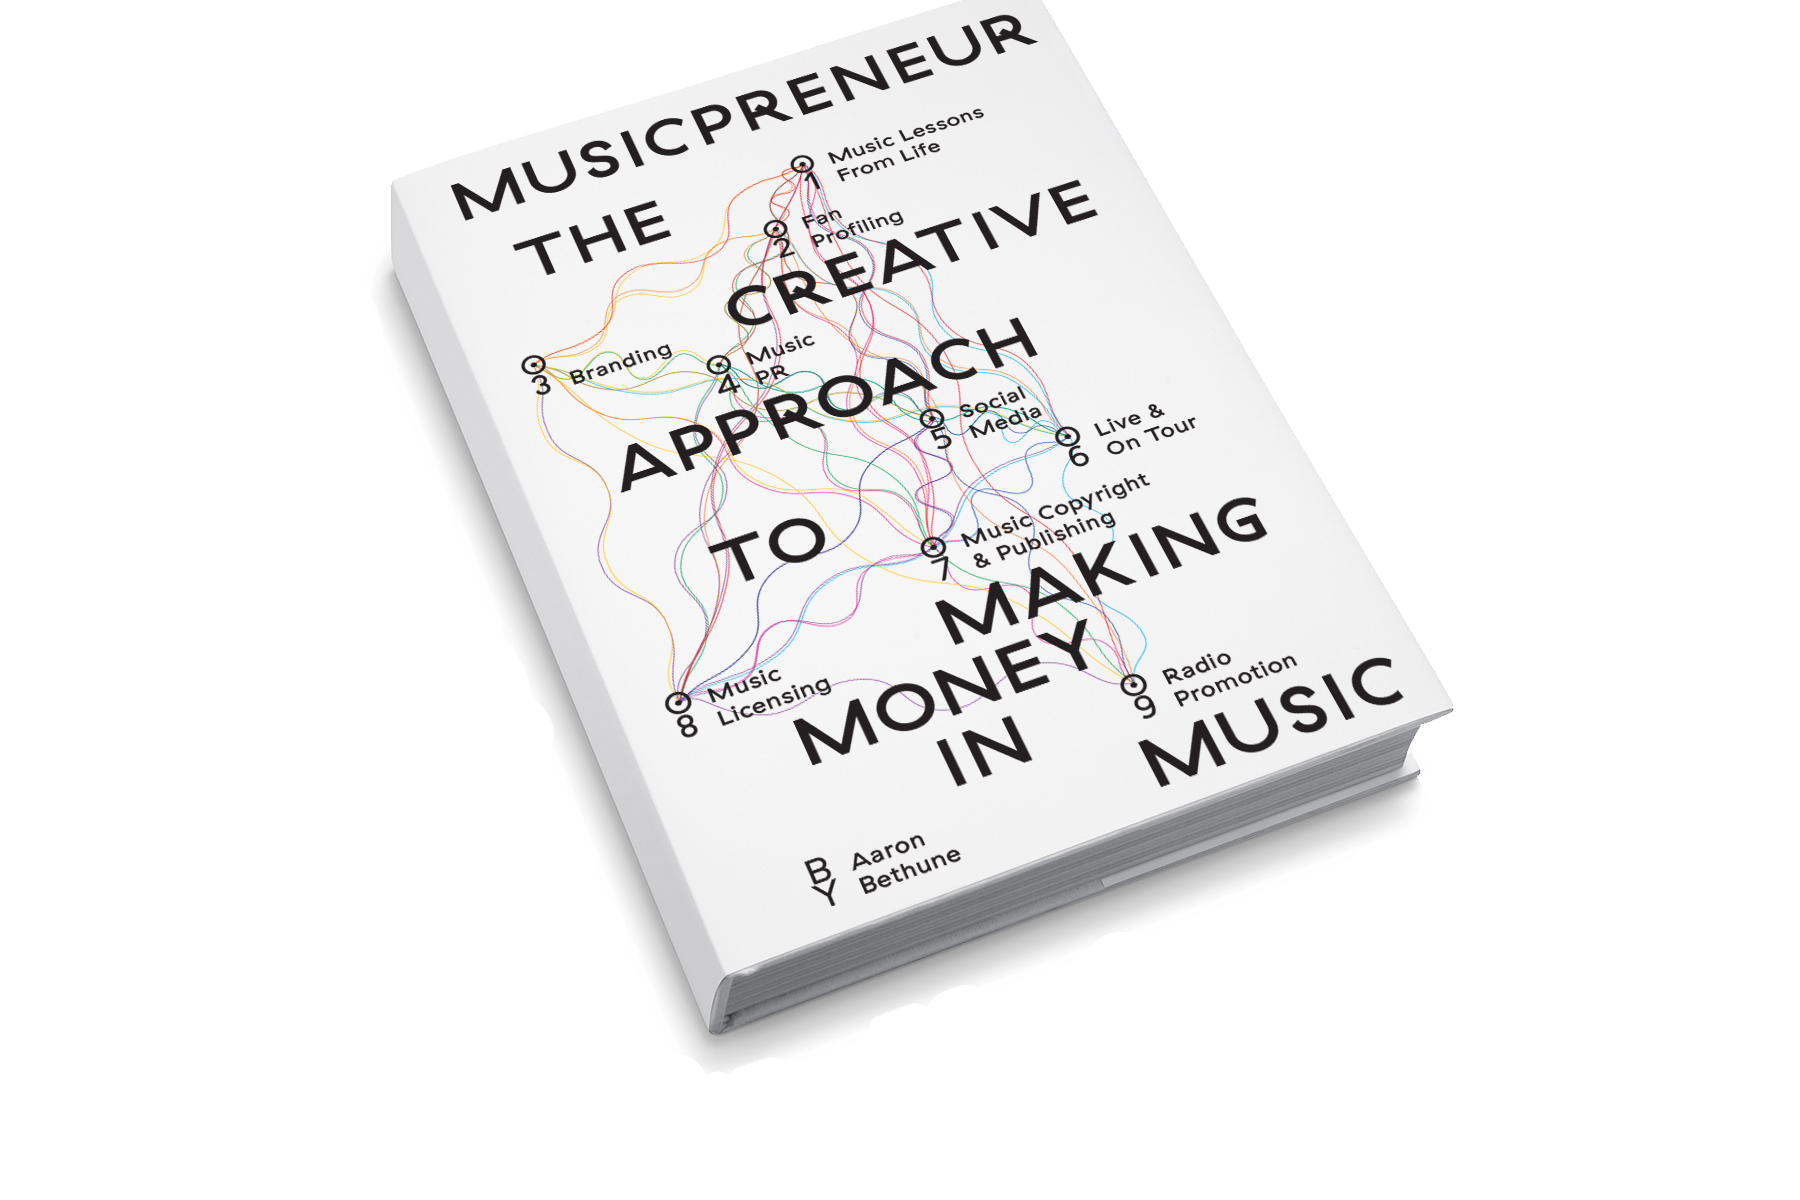 Musicpreneur-Book-PhotoMockUp_copy.png